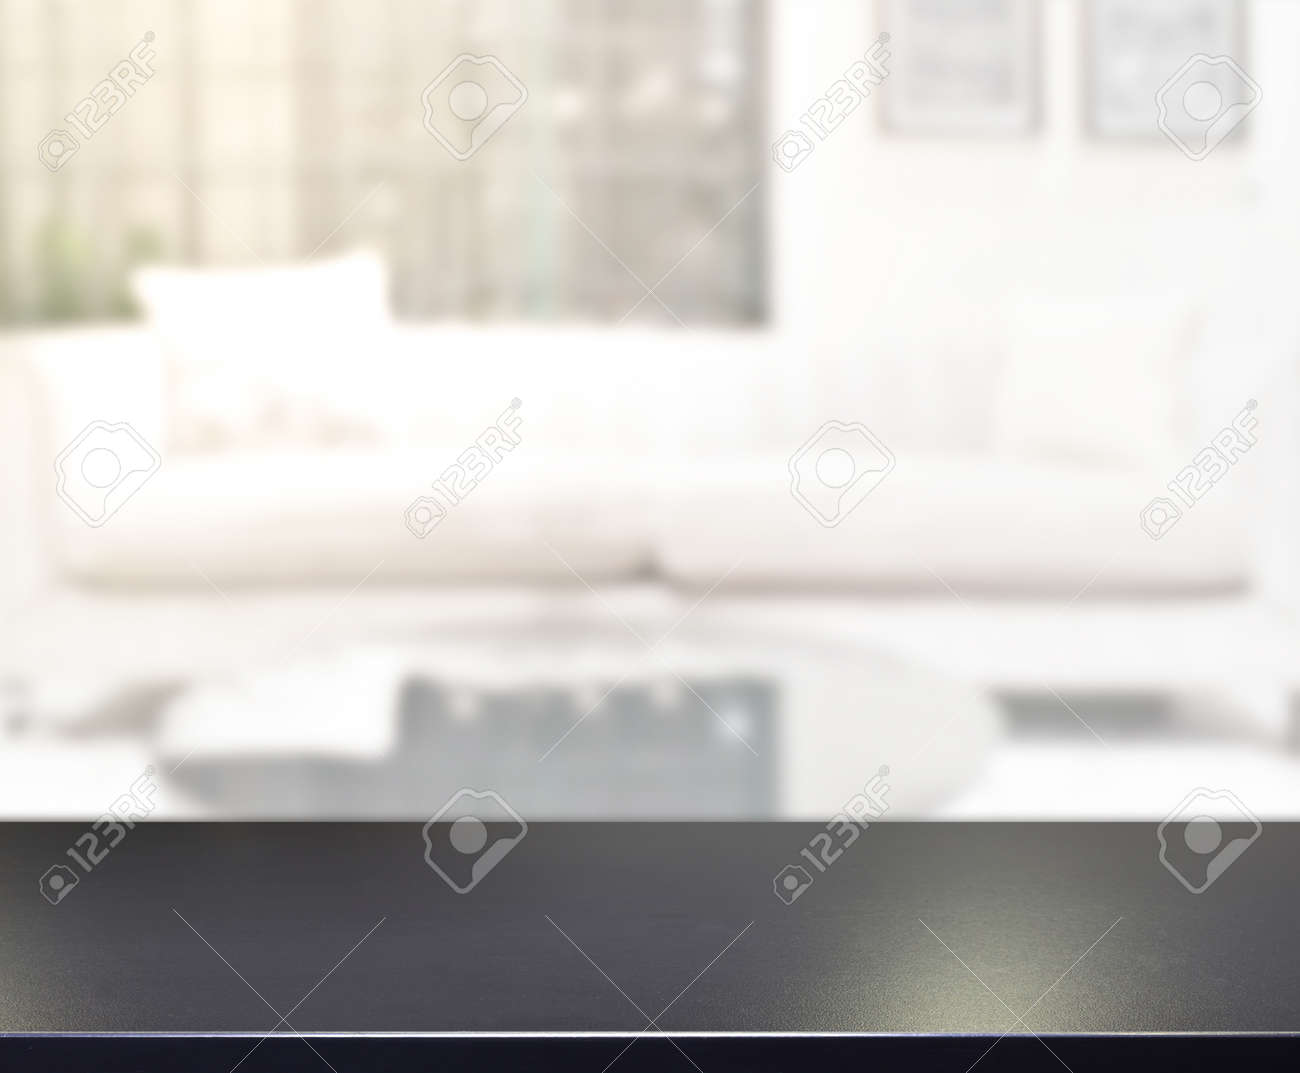 Table Top And Blur Living Room Of The Background - 148705463